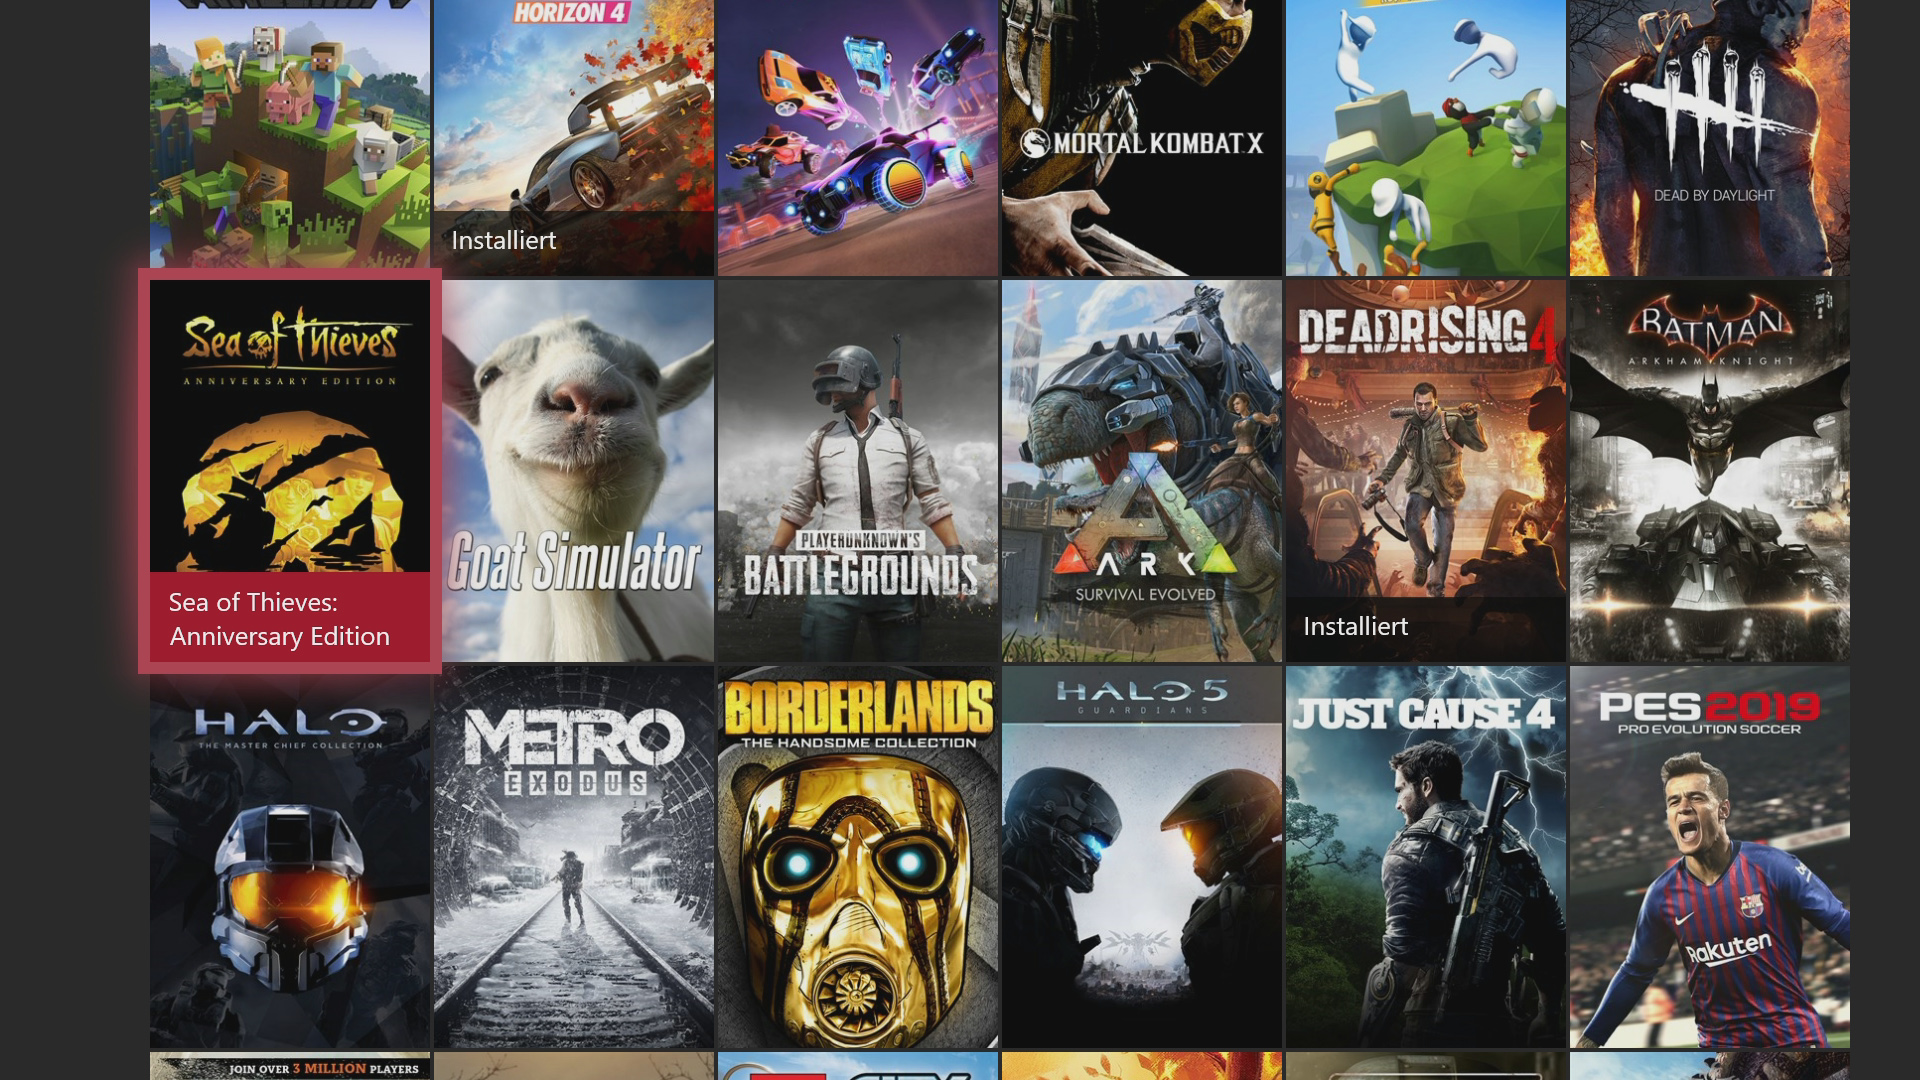 XB1 S All Digital Game Pass